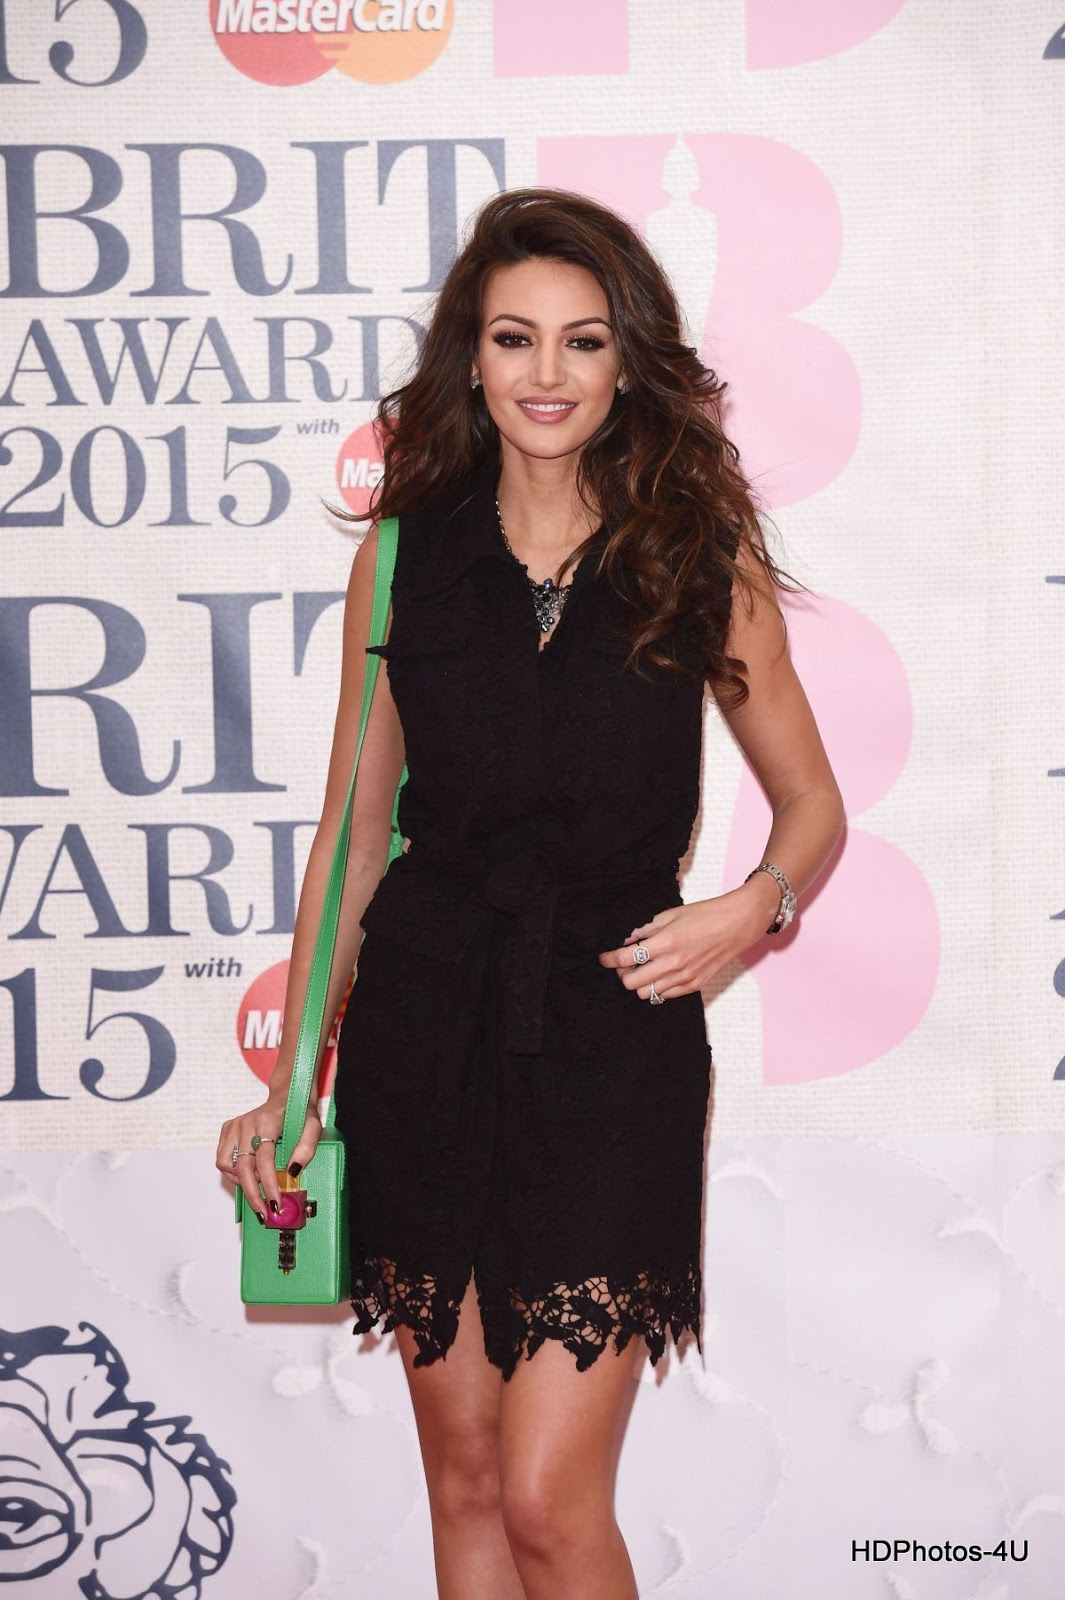 Full HQ Photos of Michelle Keegan at Brit Awards 2015 in London